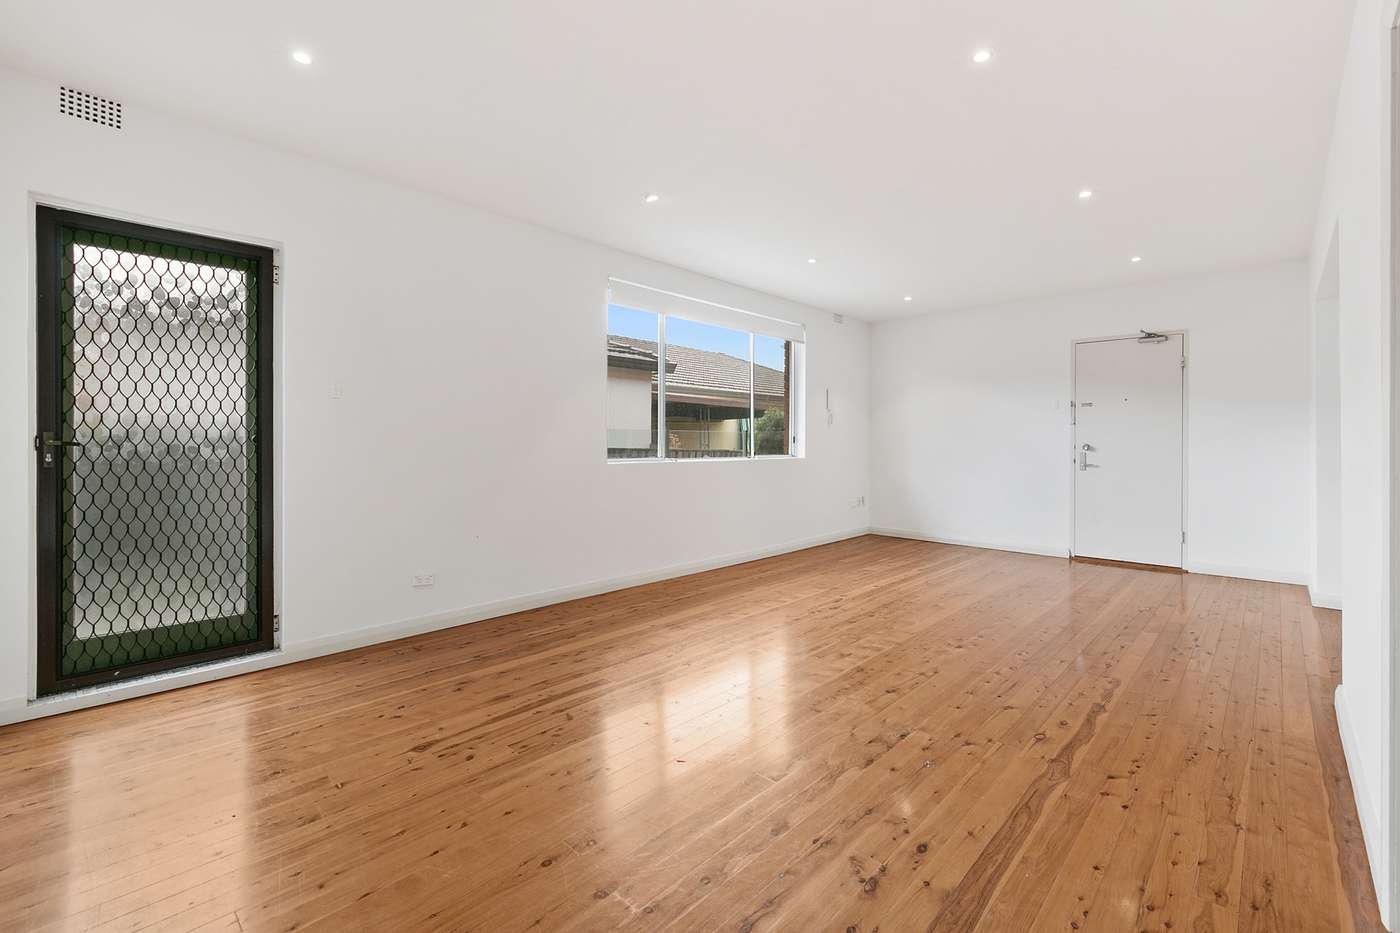 Main view of Homely apartment listing, 2/16 Beronga Street, North Strathfield, NSW 2137